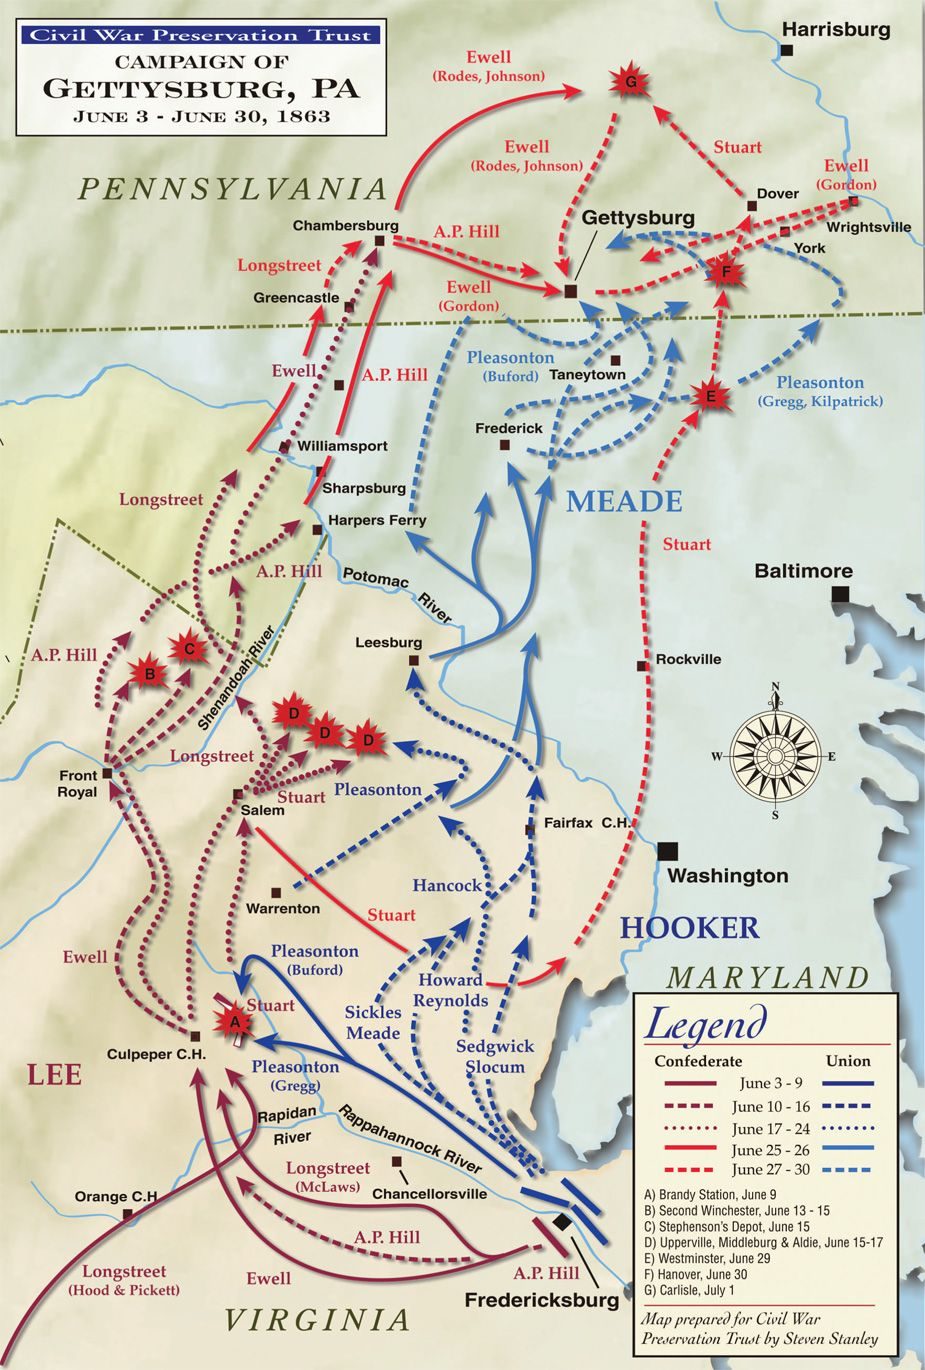 Gettysburg Campaign Map | American civil war, Gettysburg ... on gettysburg historic site map, gettysburg johnny reb trail guide, gettysburg national history, gettysburg tour map, gettysburg cemetery map, gettysburg city map, gettysburg national visitor center, gettysburg visitor center gift shop, gettysburg visitor center hours, pennsylvania national parks map, gettysburg south dakota map, cemetery hill map, gettysburg address map, gettysburg walking map, gettysburg tourism map, gettysburg virginia map, gettysburg pennsylvania on us map, gettysburg topographic map, jackson parish louisiana map, gettysburg monuments map by state,